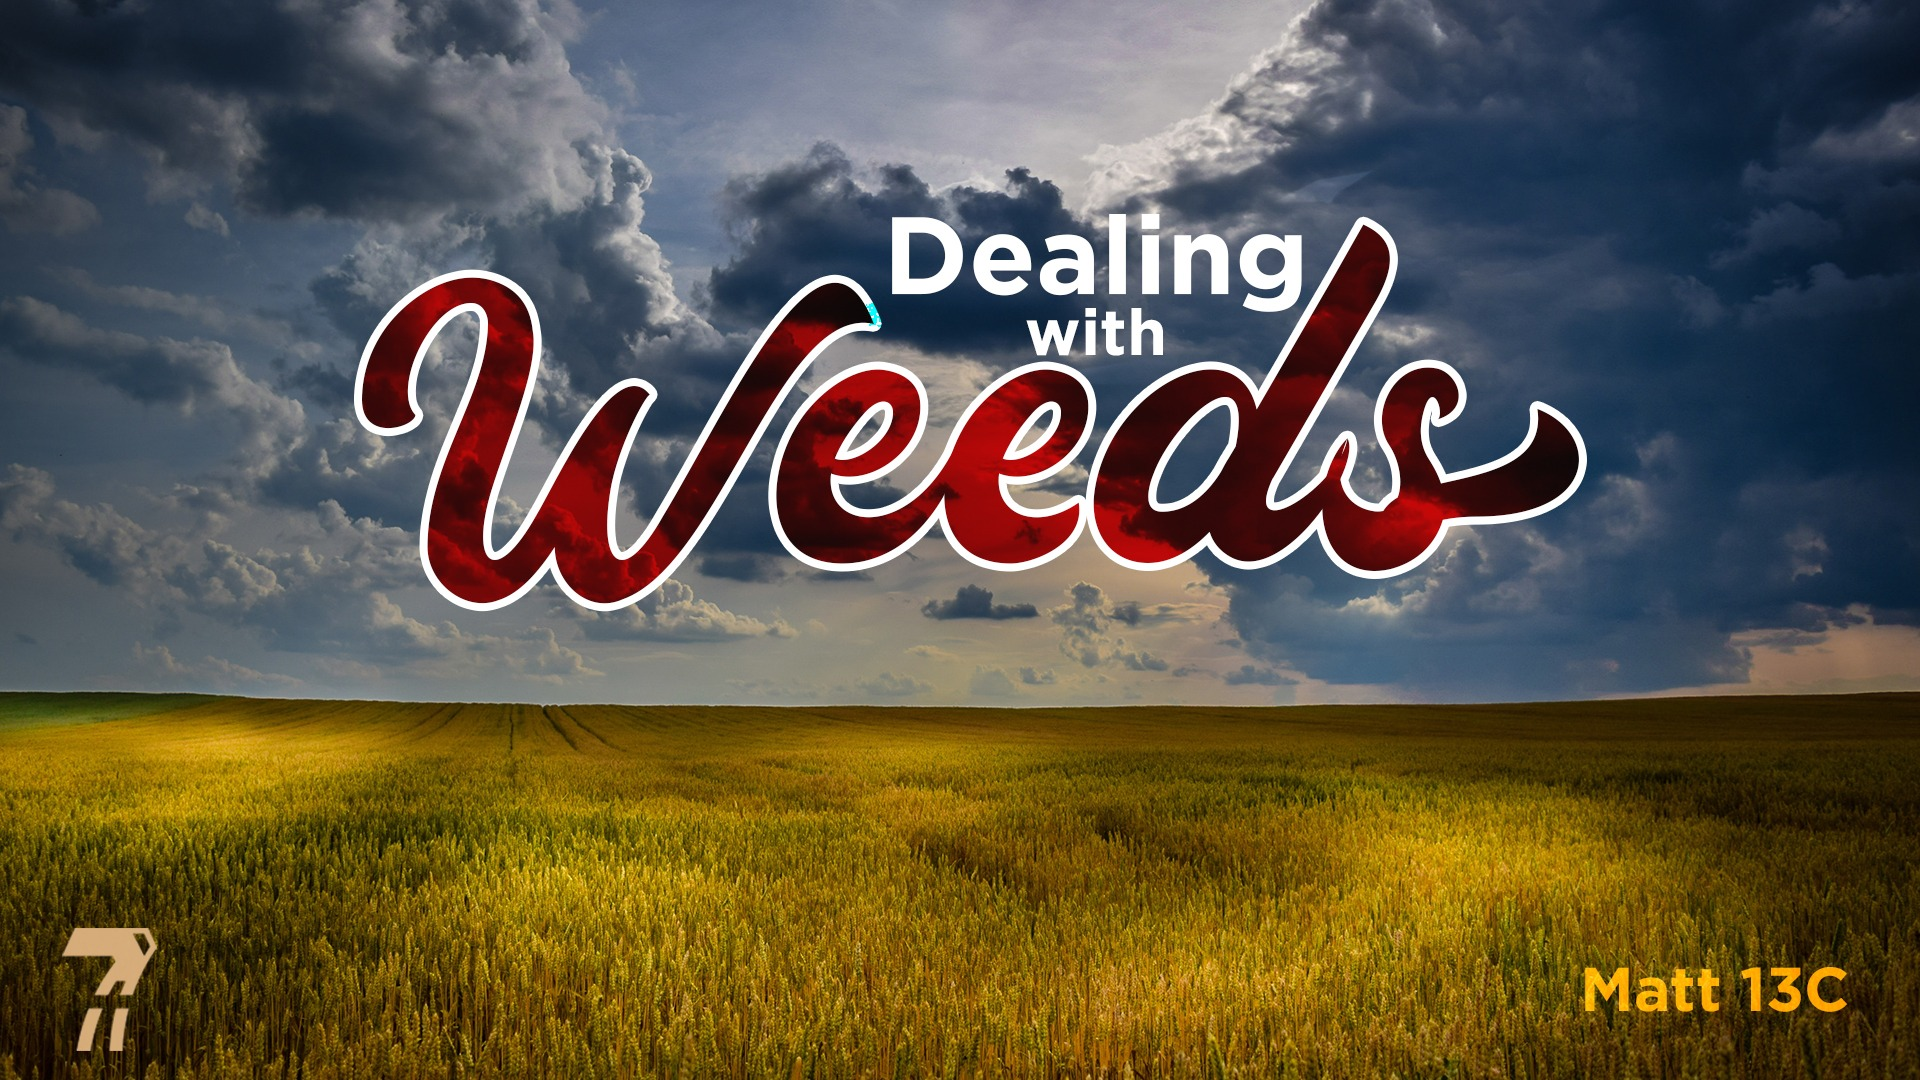 Matthew 13c – Dealing with Weeds